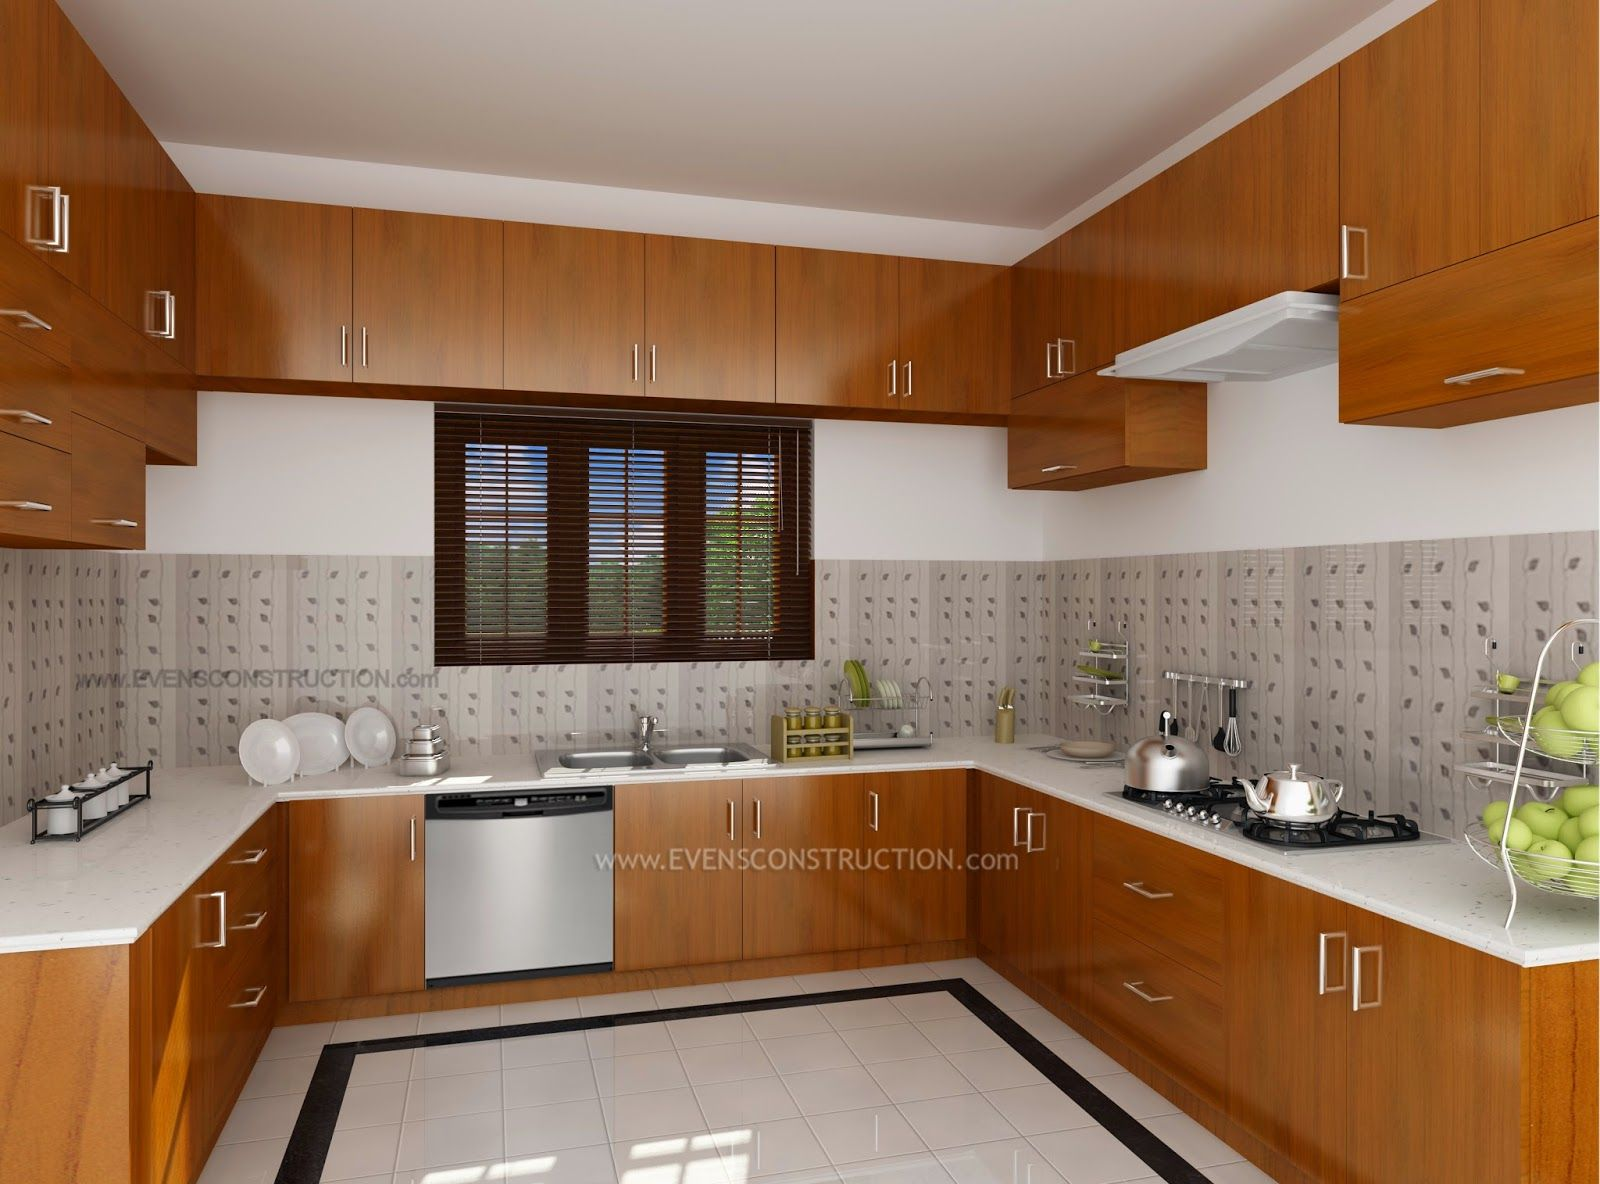 100 Latest Home Kitchen Designs House Design Kitchen Interior Design Kitchen Kitchen Room Design